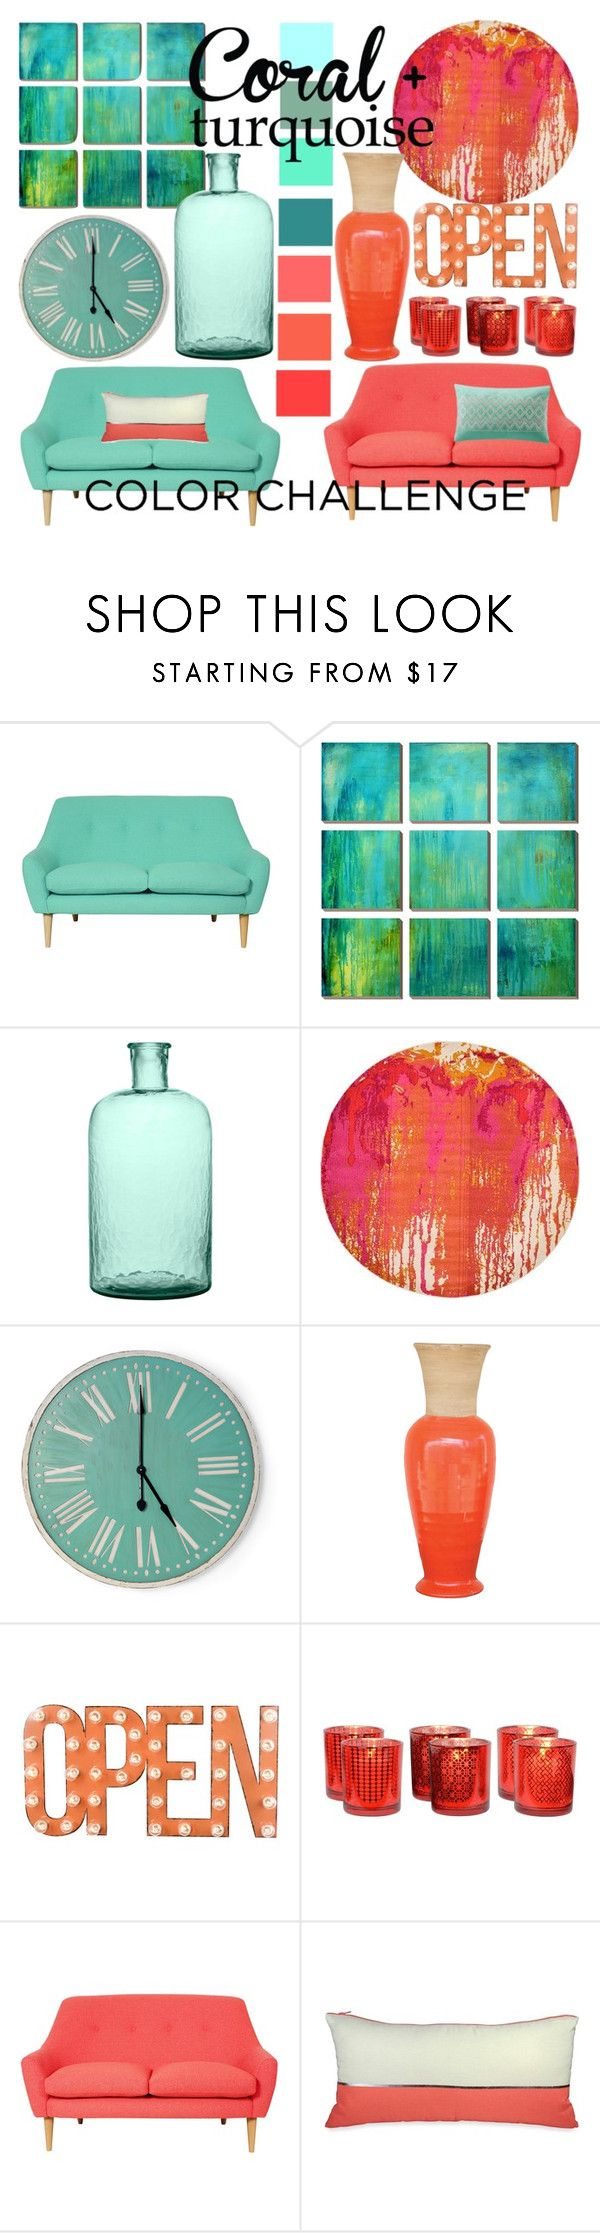 Coral + Turqoise by clareceq29 on Polyvore featuring interior, interiors, interior design, home, home decor, interior decorating, H&M, Dot & Bo, DKNY and colorchallenge